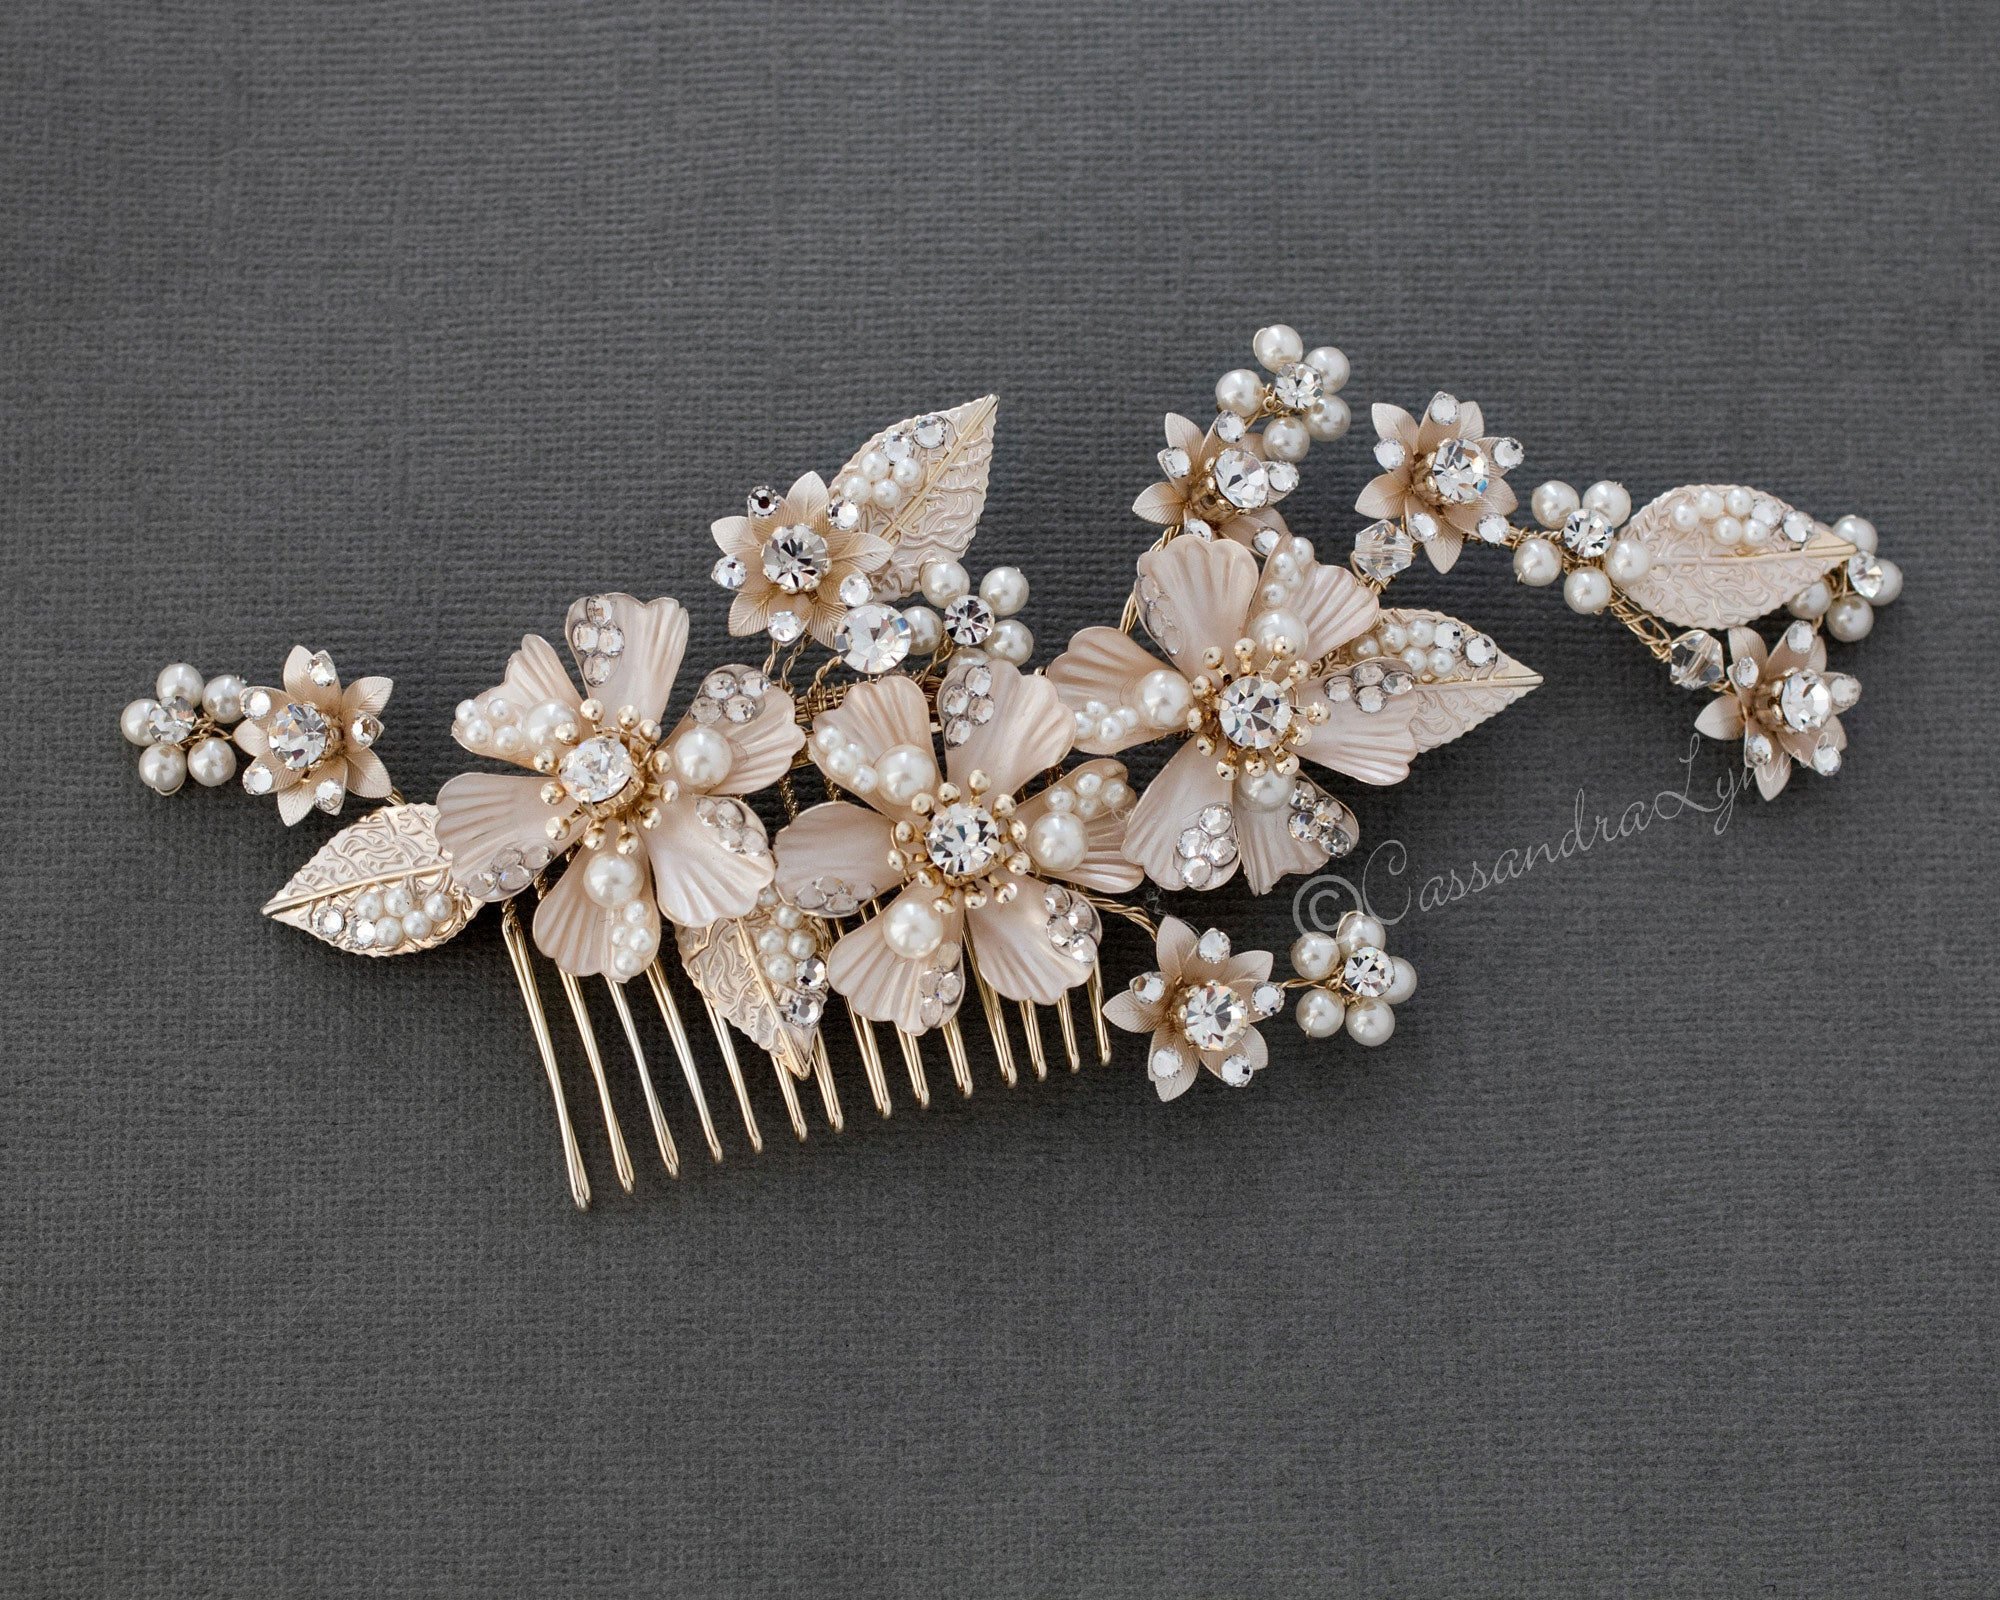 Matte Gold Metal Flowers and Pearls Comb